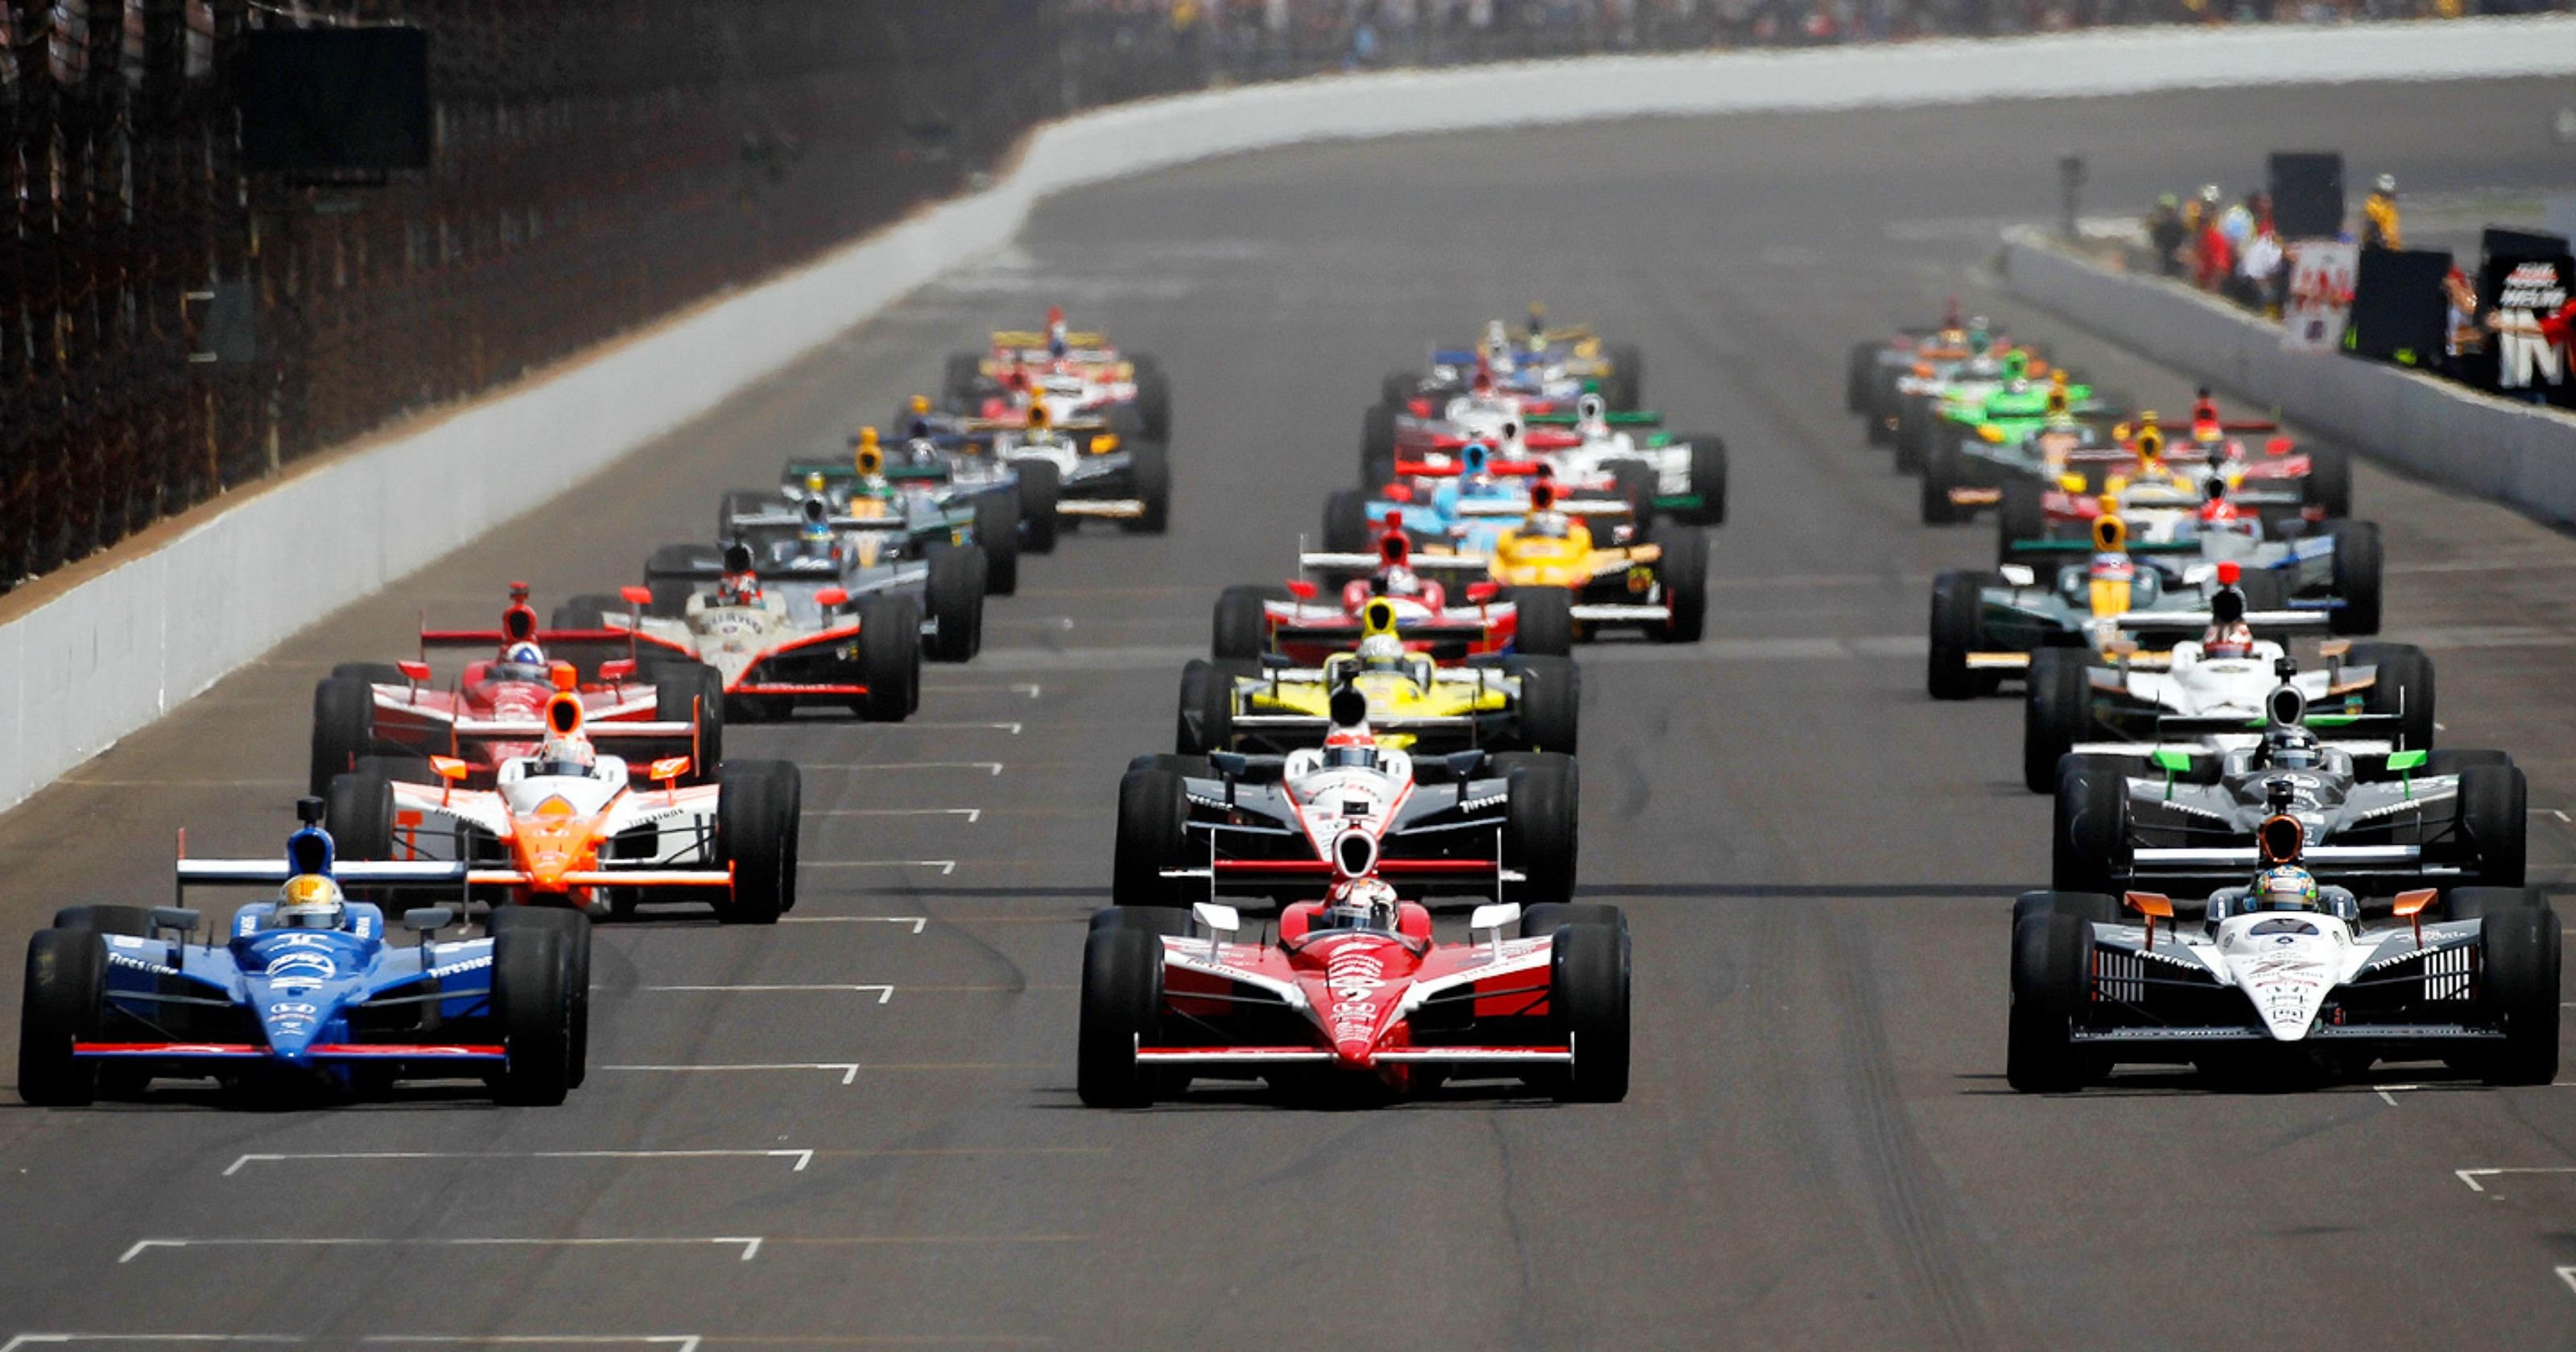 INDY race racing indycar indianapolis 500 d wallpaper 3200x1680 3200x1680